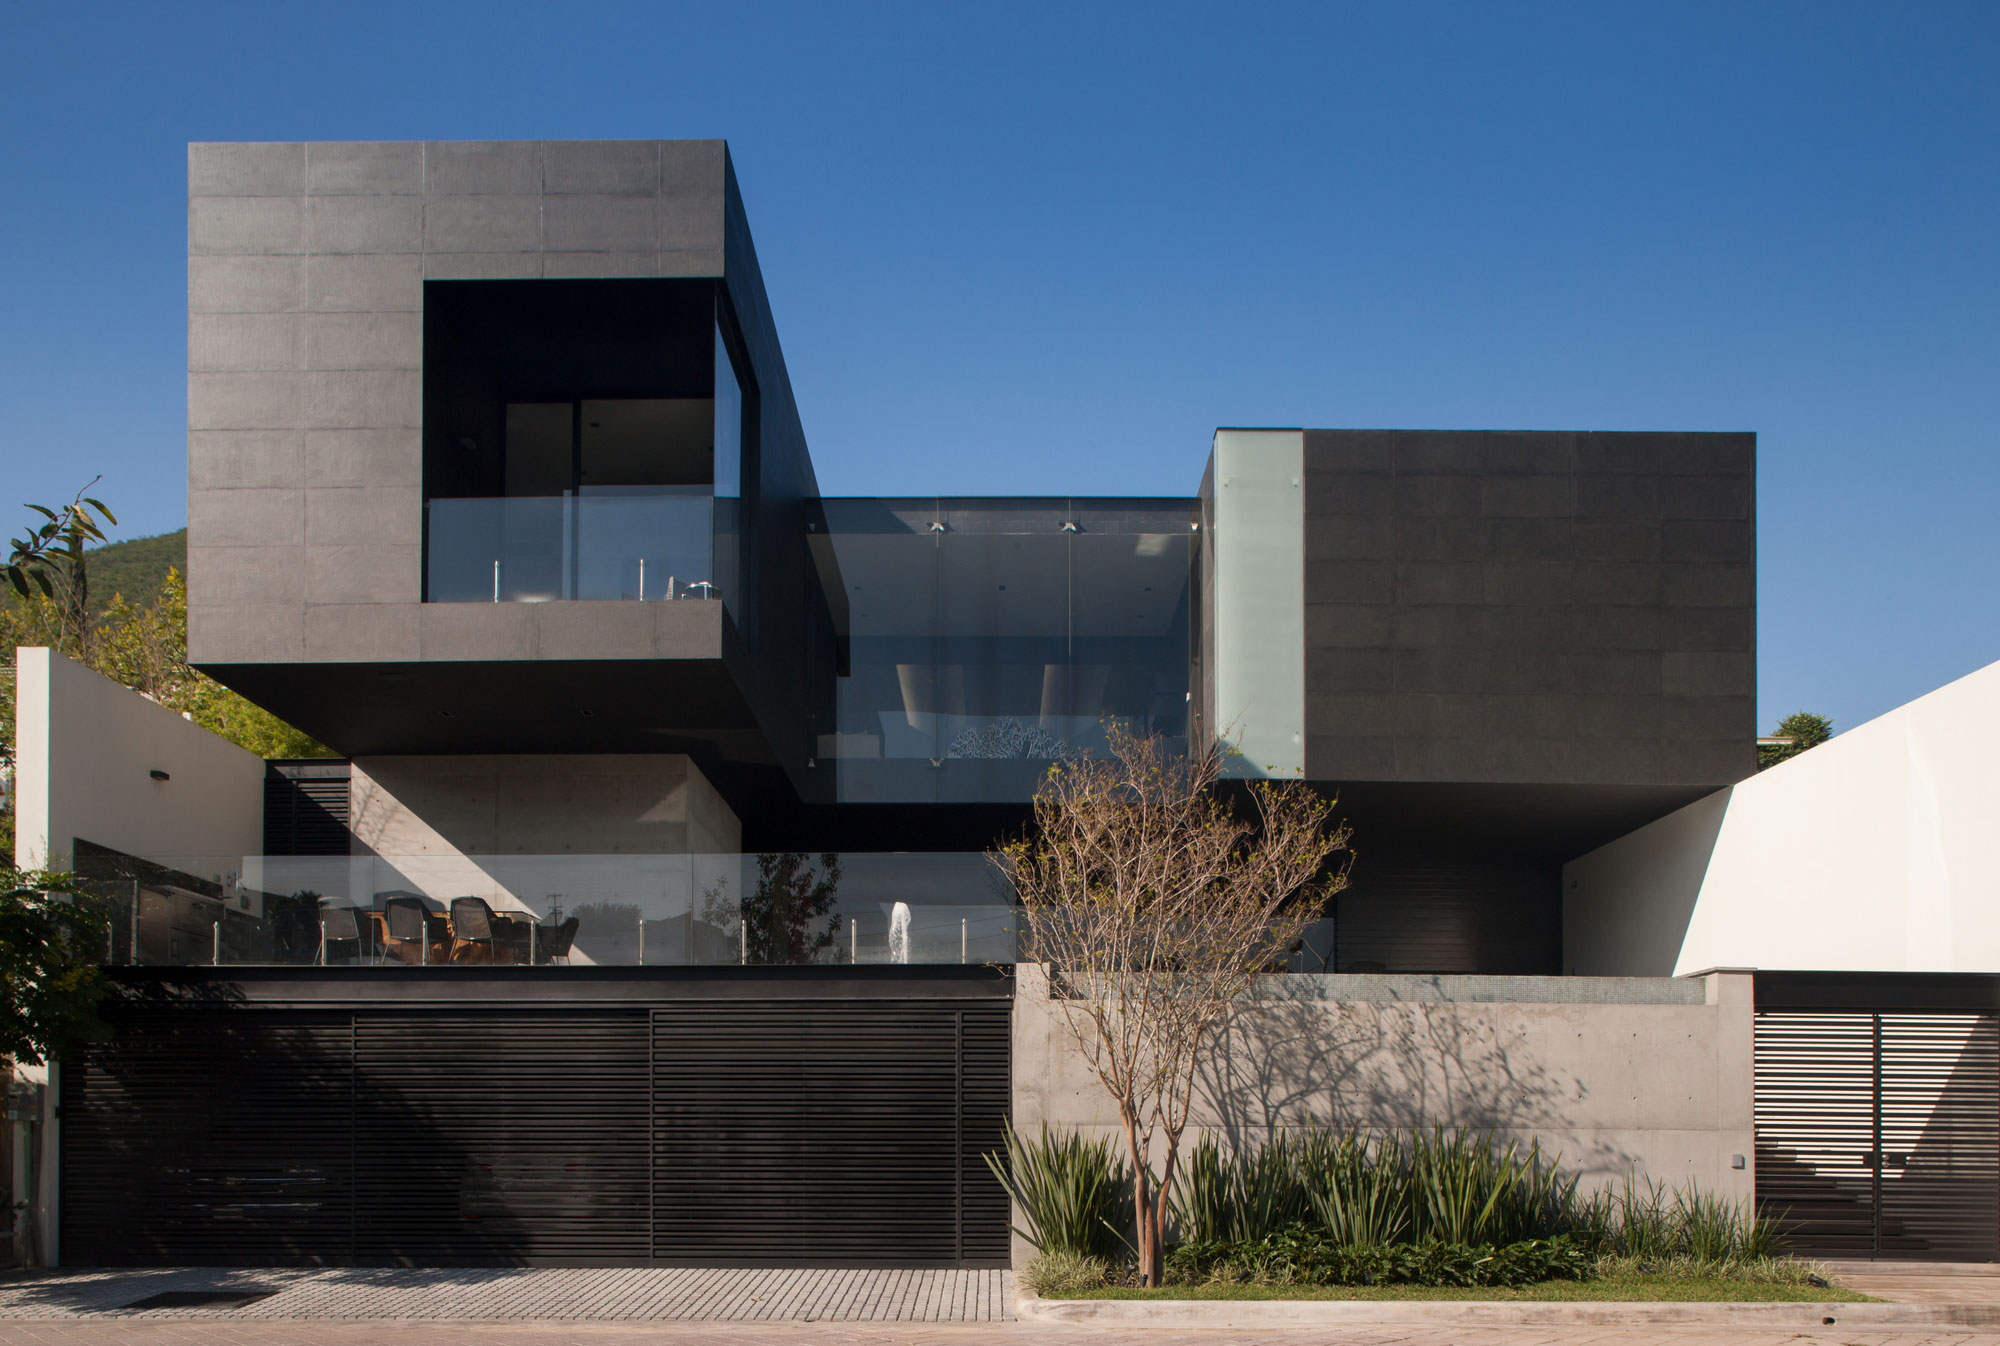 Casa ch is a stunning residence in mexico architecture for Casa design